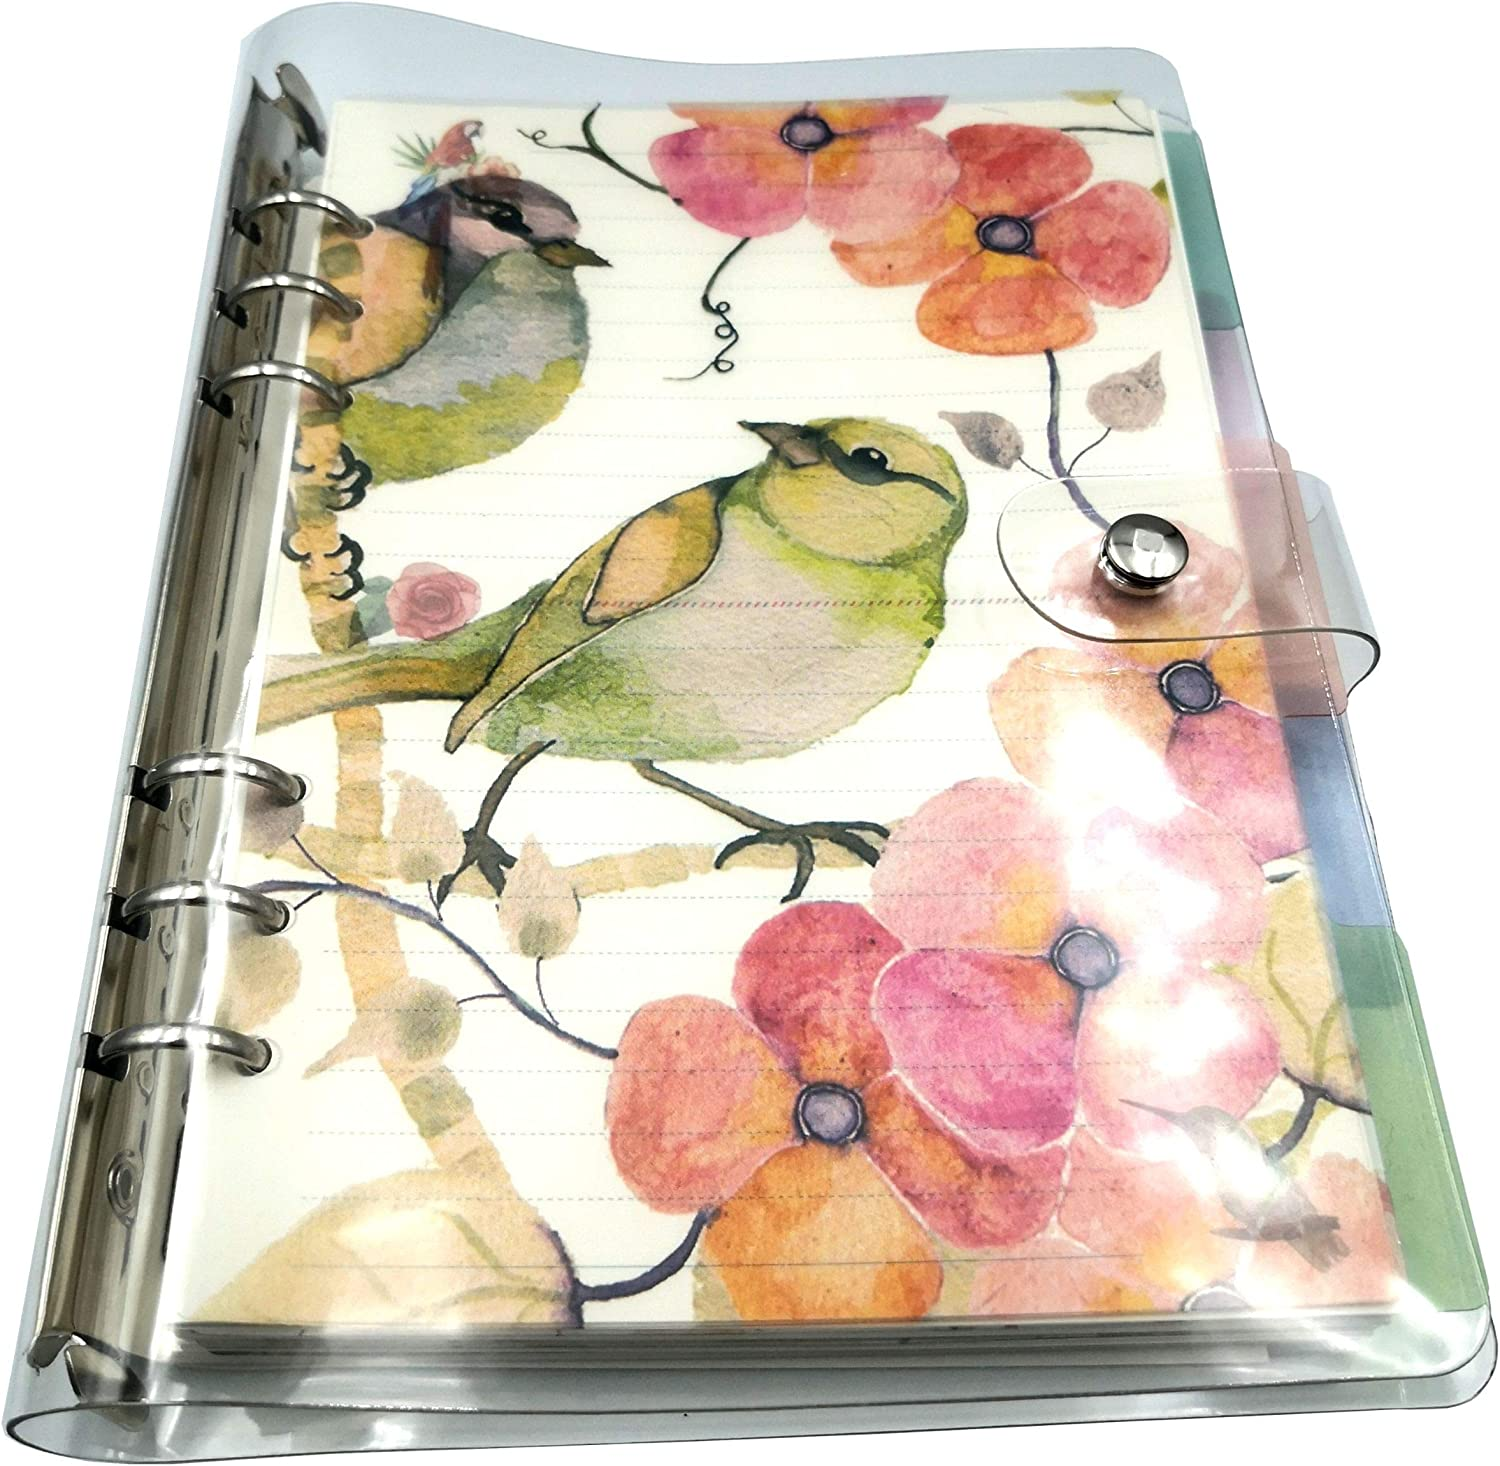 Zplanz A5 Planner Binder 2020 Calendar Daily Refillable - A5 Planner Dividers, Hourly Appointment Pages - Clear Ringed A5 6 Ring Binder Planner Organizer Loose Leaf Journal Compact Ring Bound Planner